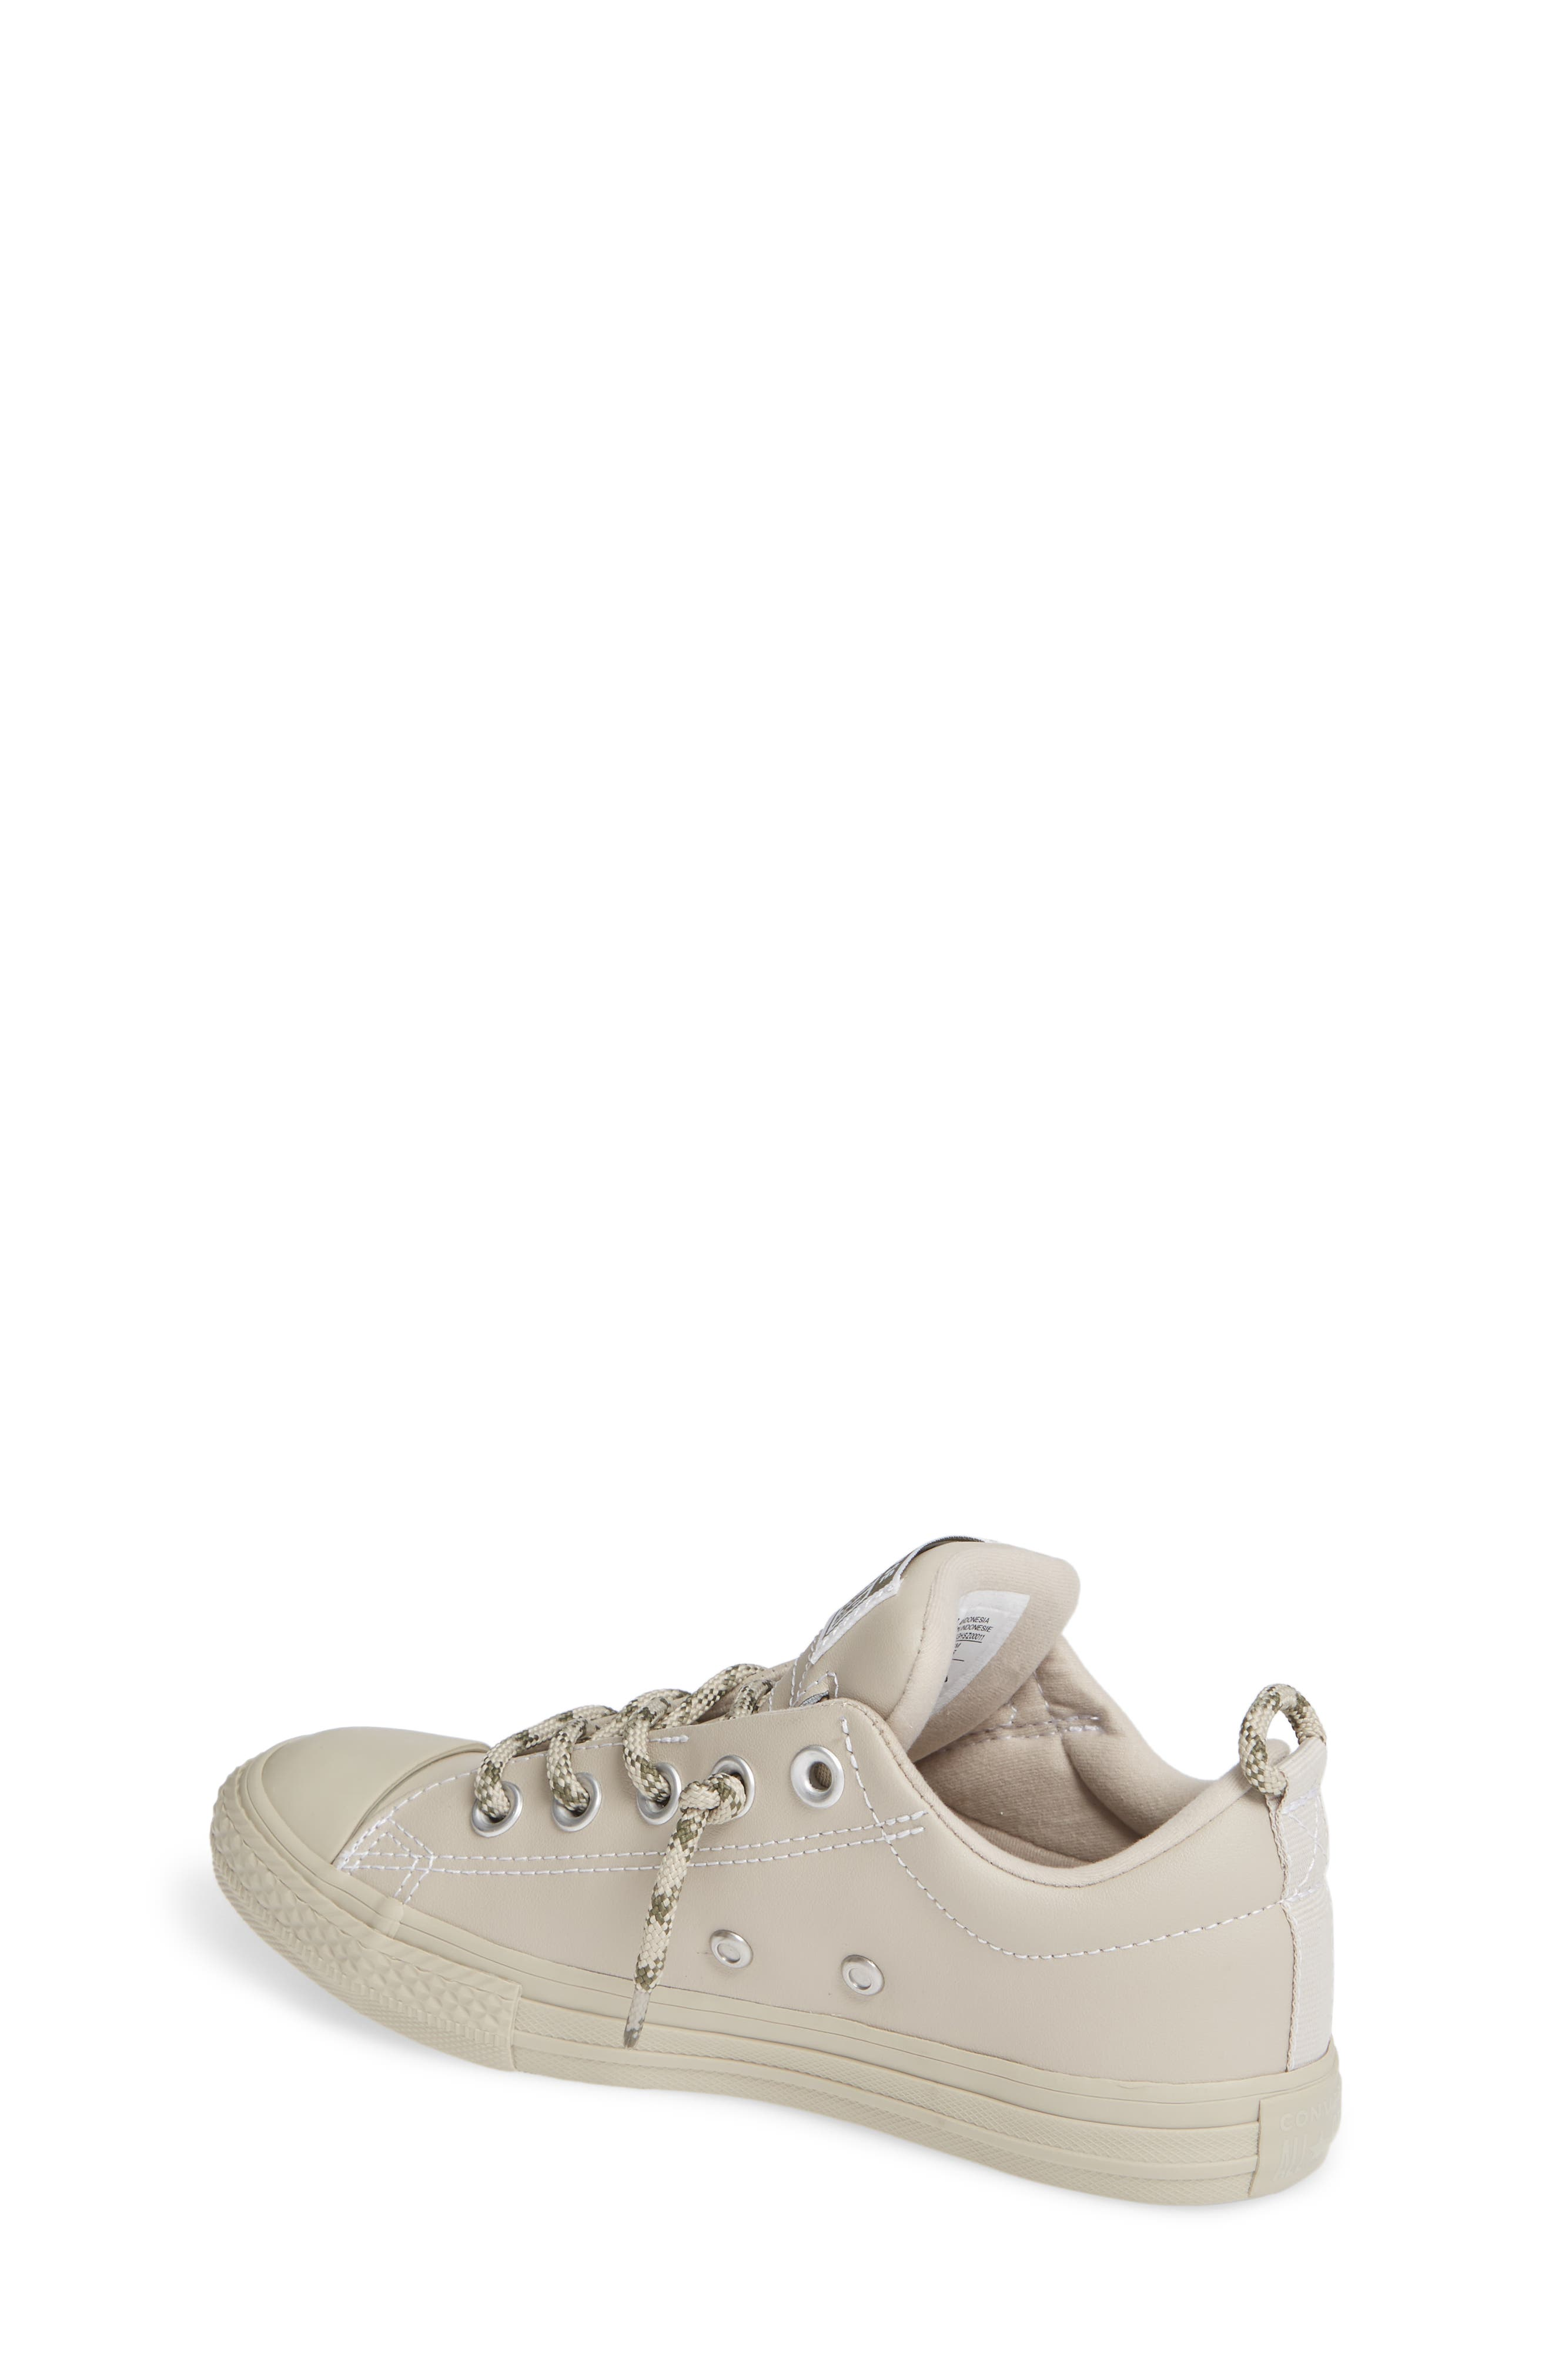 CONVERSE, Chuck Taylor<sup>®</sup> All Star<sup>®</sup> Street Hiker Sneaker, Alternate thumbnail 2, color, PAPYRUS